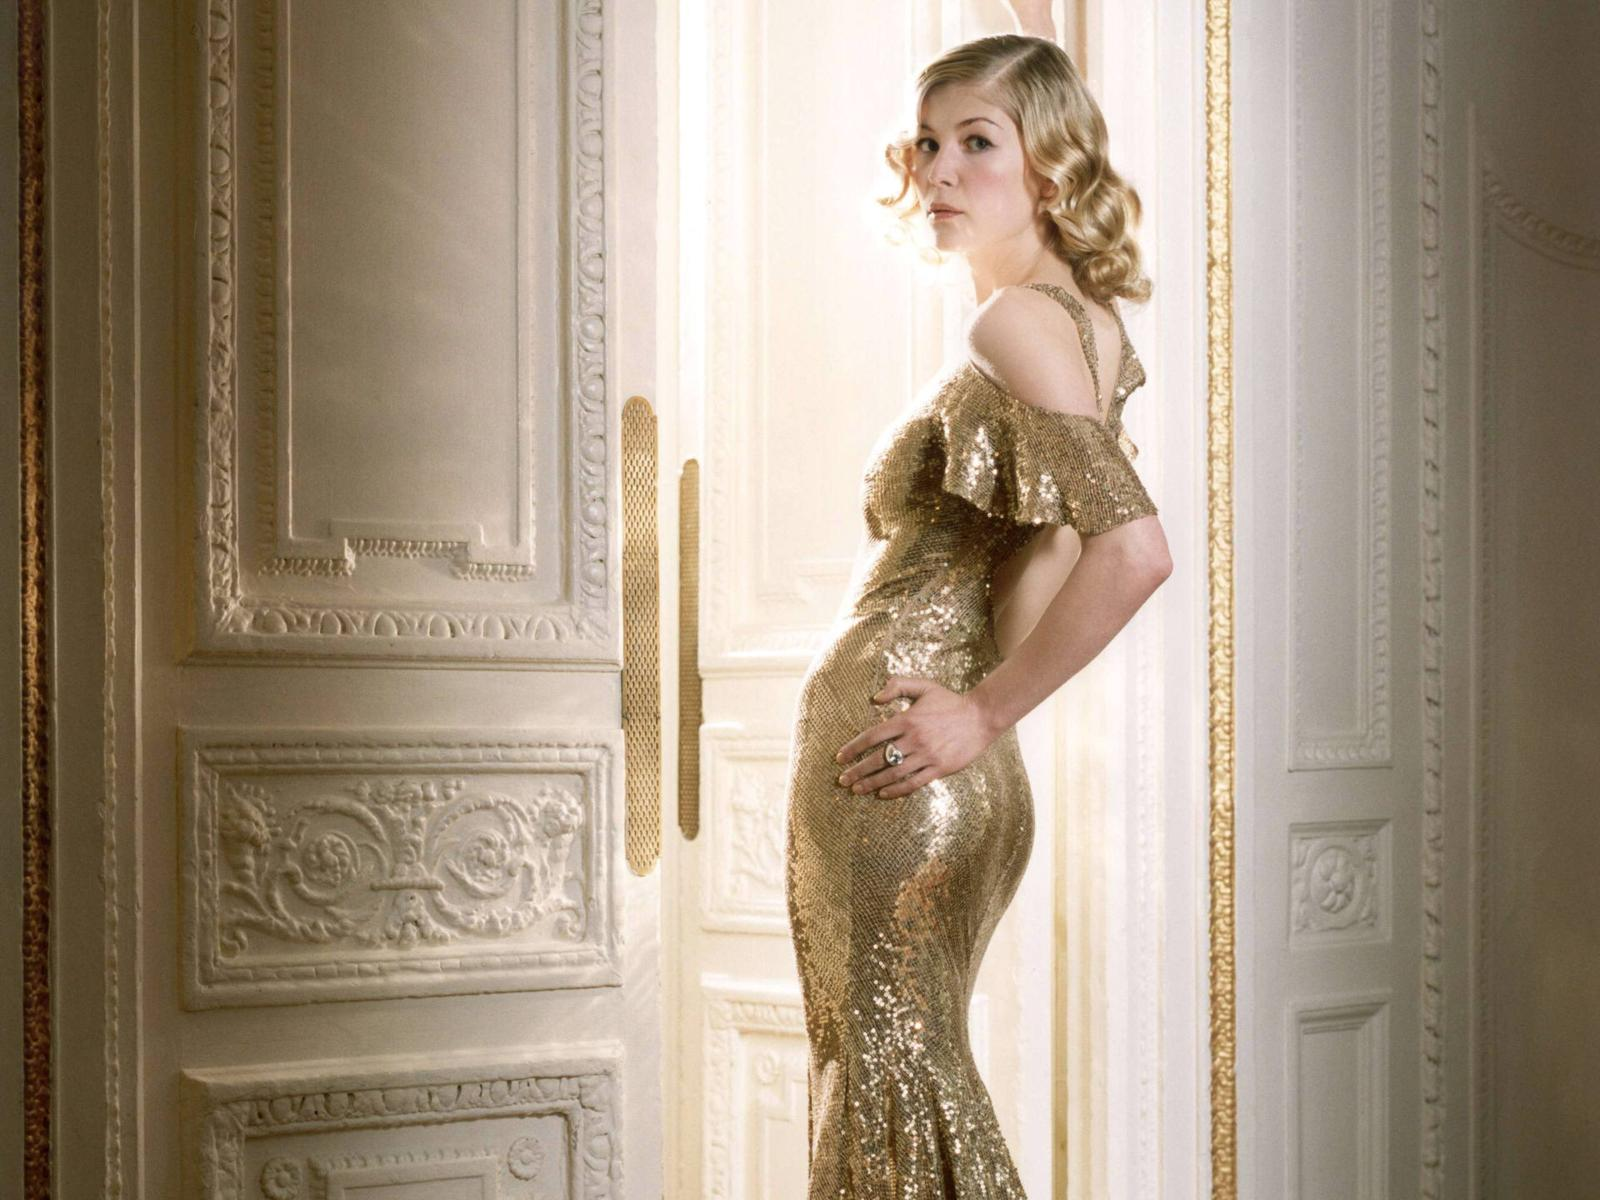 http://1.bp.blogspot.com/-RLw8h2jlzao/TfZbtiZrlHI/AAAAAAAAA70/hvMpUUWqFDw/s1600/rosamund_pike_gold_dress_desktop_wallpaper_17883.jpg